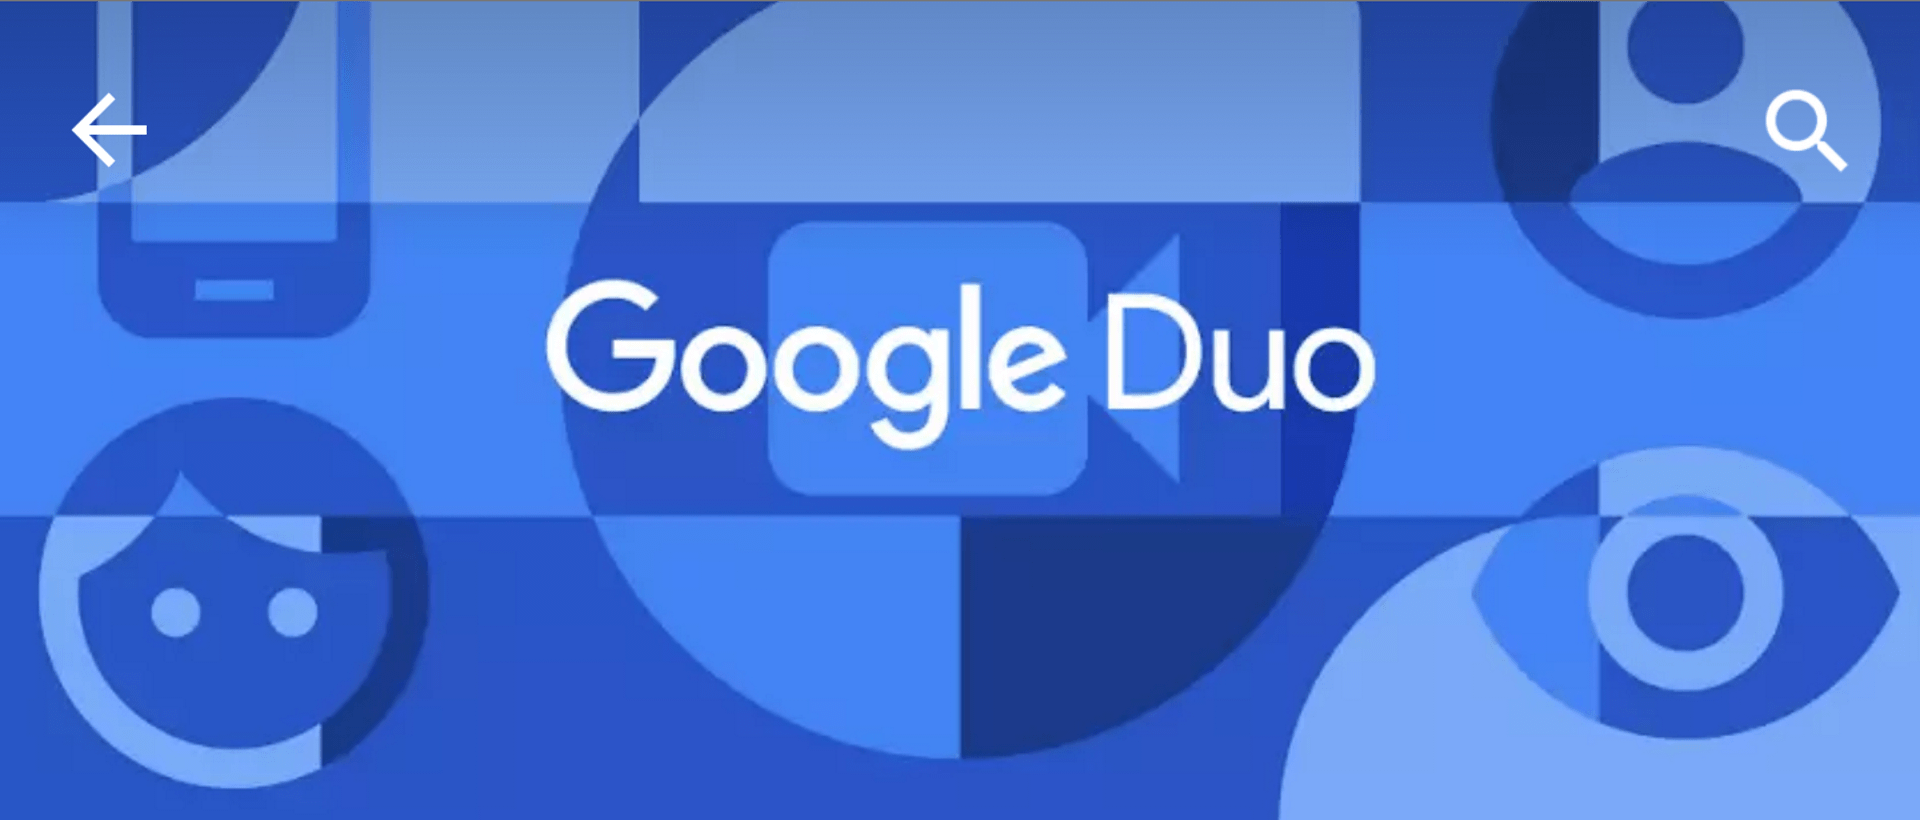 google duo review google tries video calls again androidpit. Black Bedroom Furniture Sets. Home Design Ideas